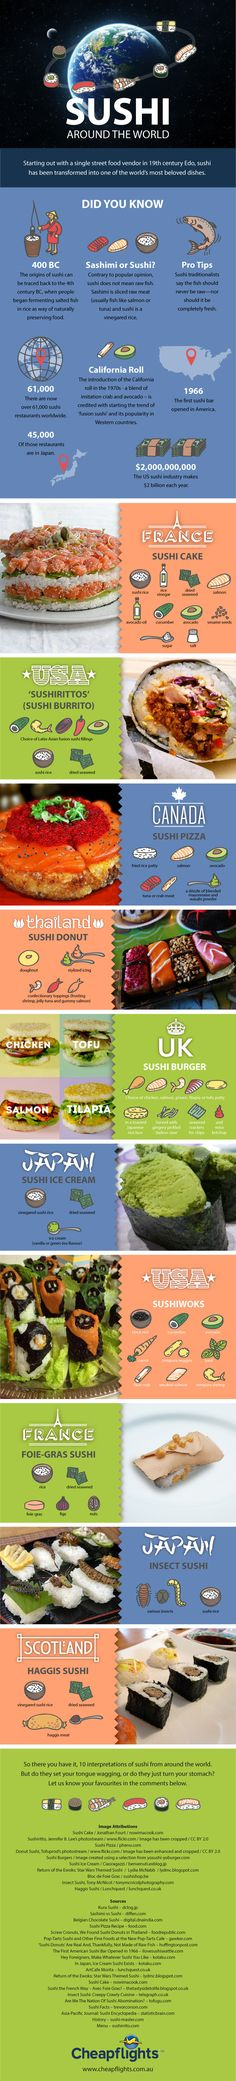 Visualistan: Sushi Around the World #infographic                                                                                                                                                                                 More